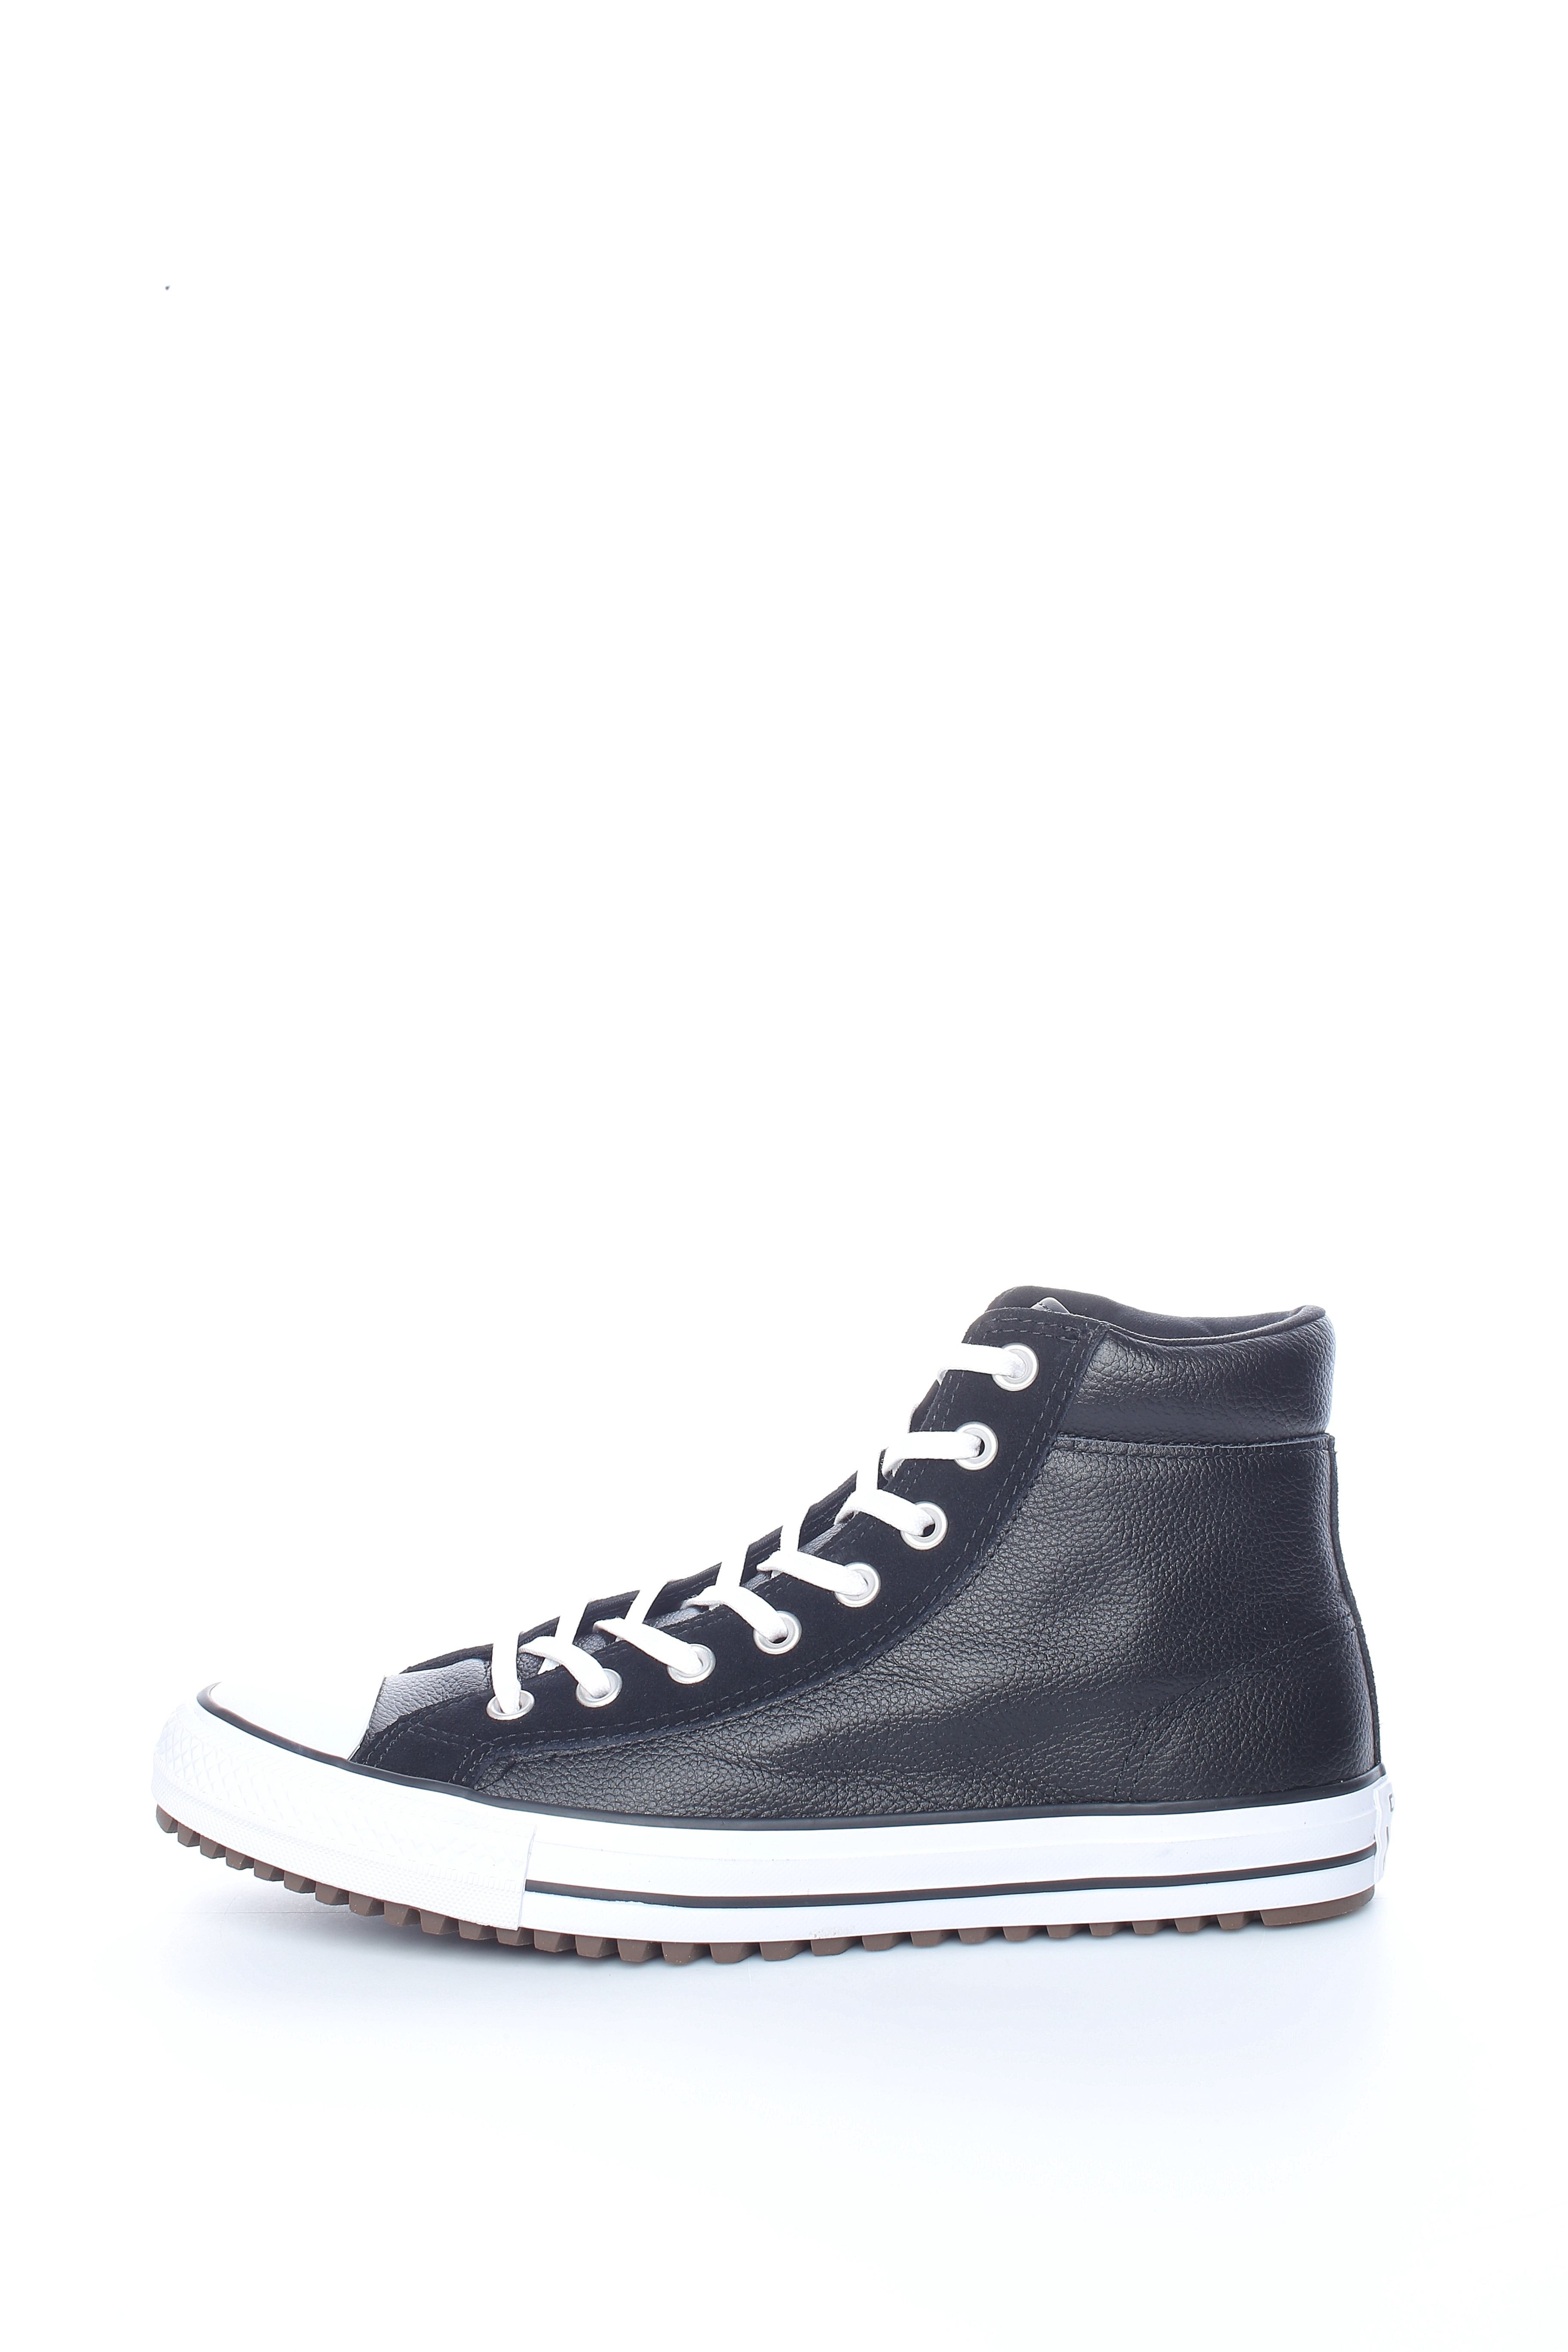 CONVERSE – Unisex αθλητικά μποτάκια Chuck Taylor All Star Boot μαύρα